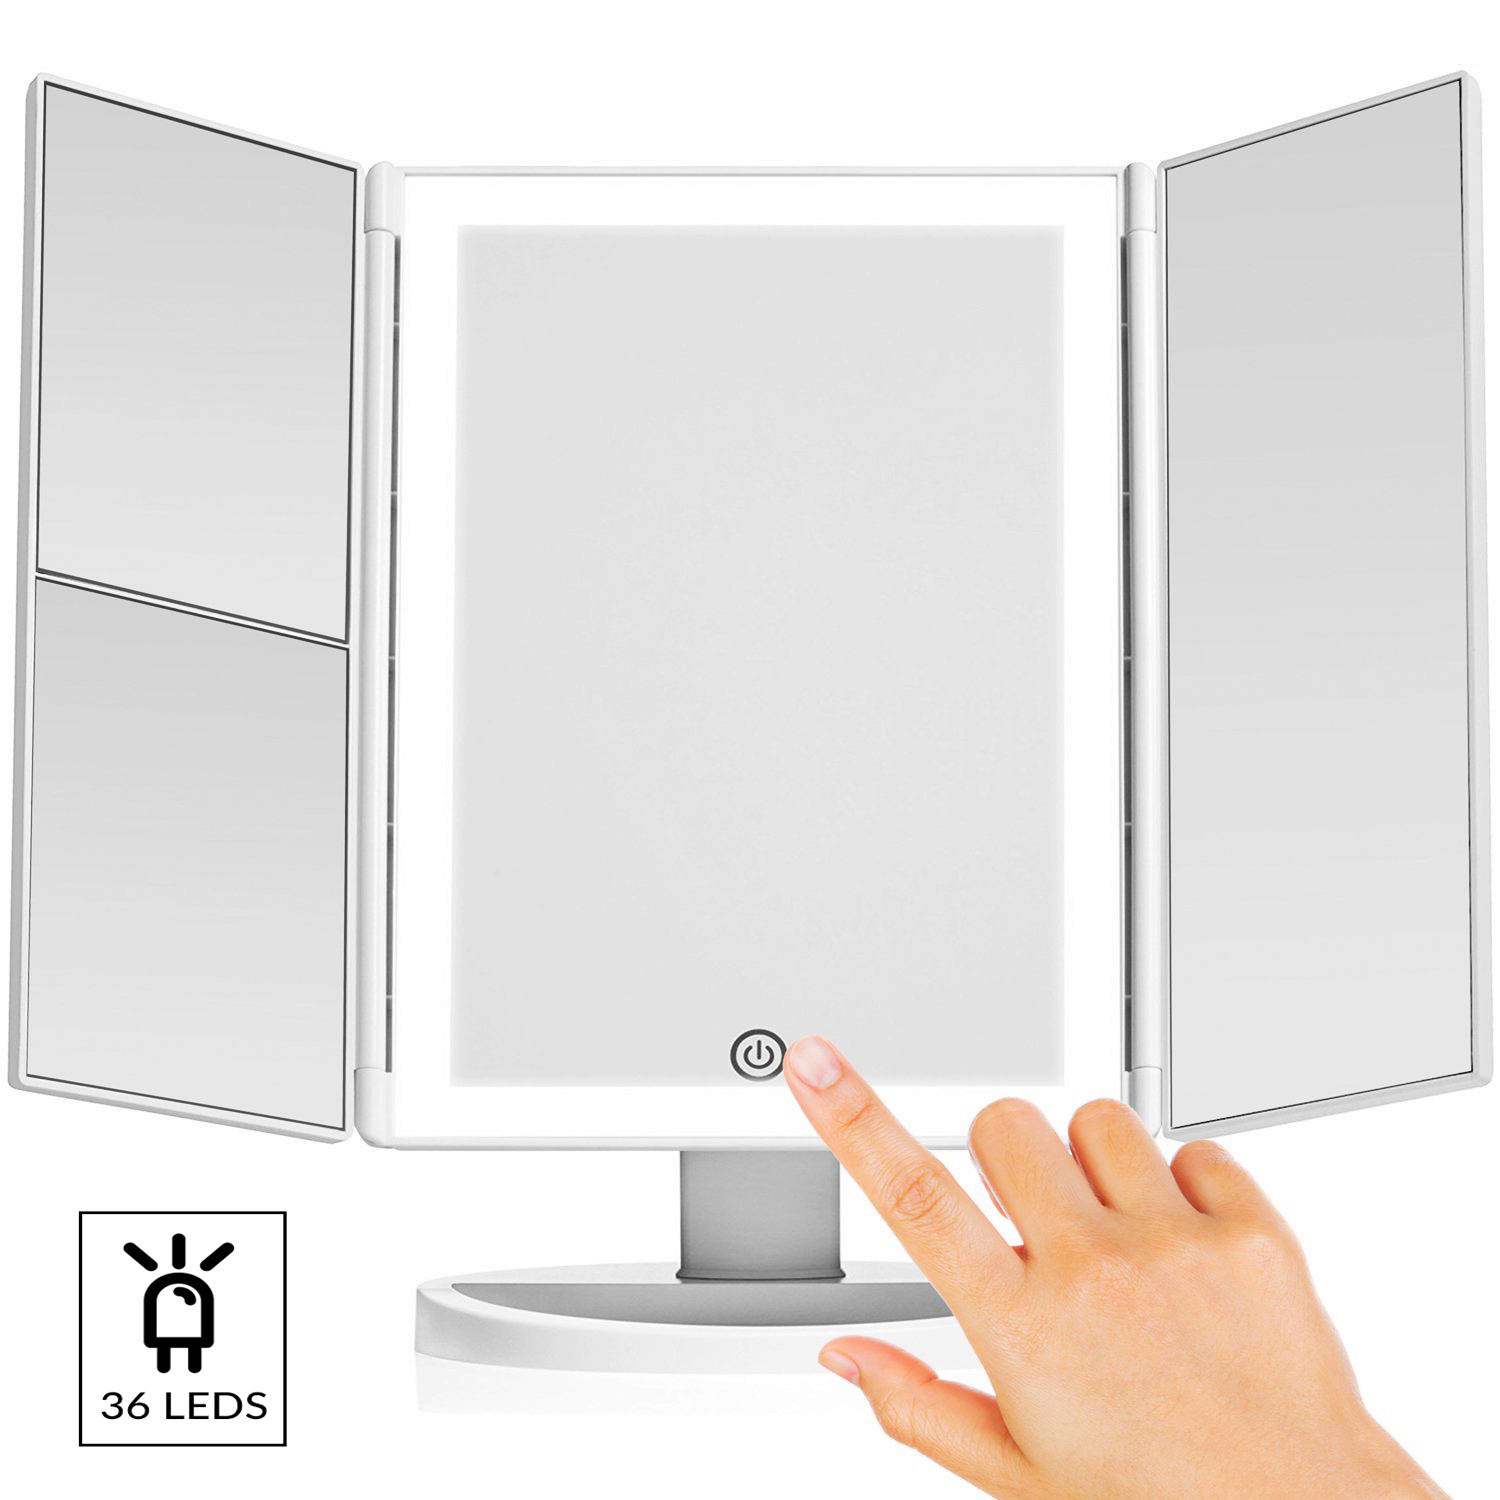 Vanity Makeup Mirror with (Upgraded) Anti-Glare & Natural LED Lighting Controlled by Smart Touch Screen Sensor Dual Power Supply & 3x, 2x Magnification For Details by LivingPro